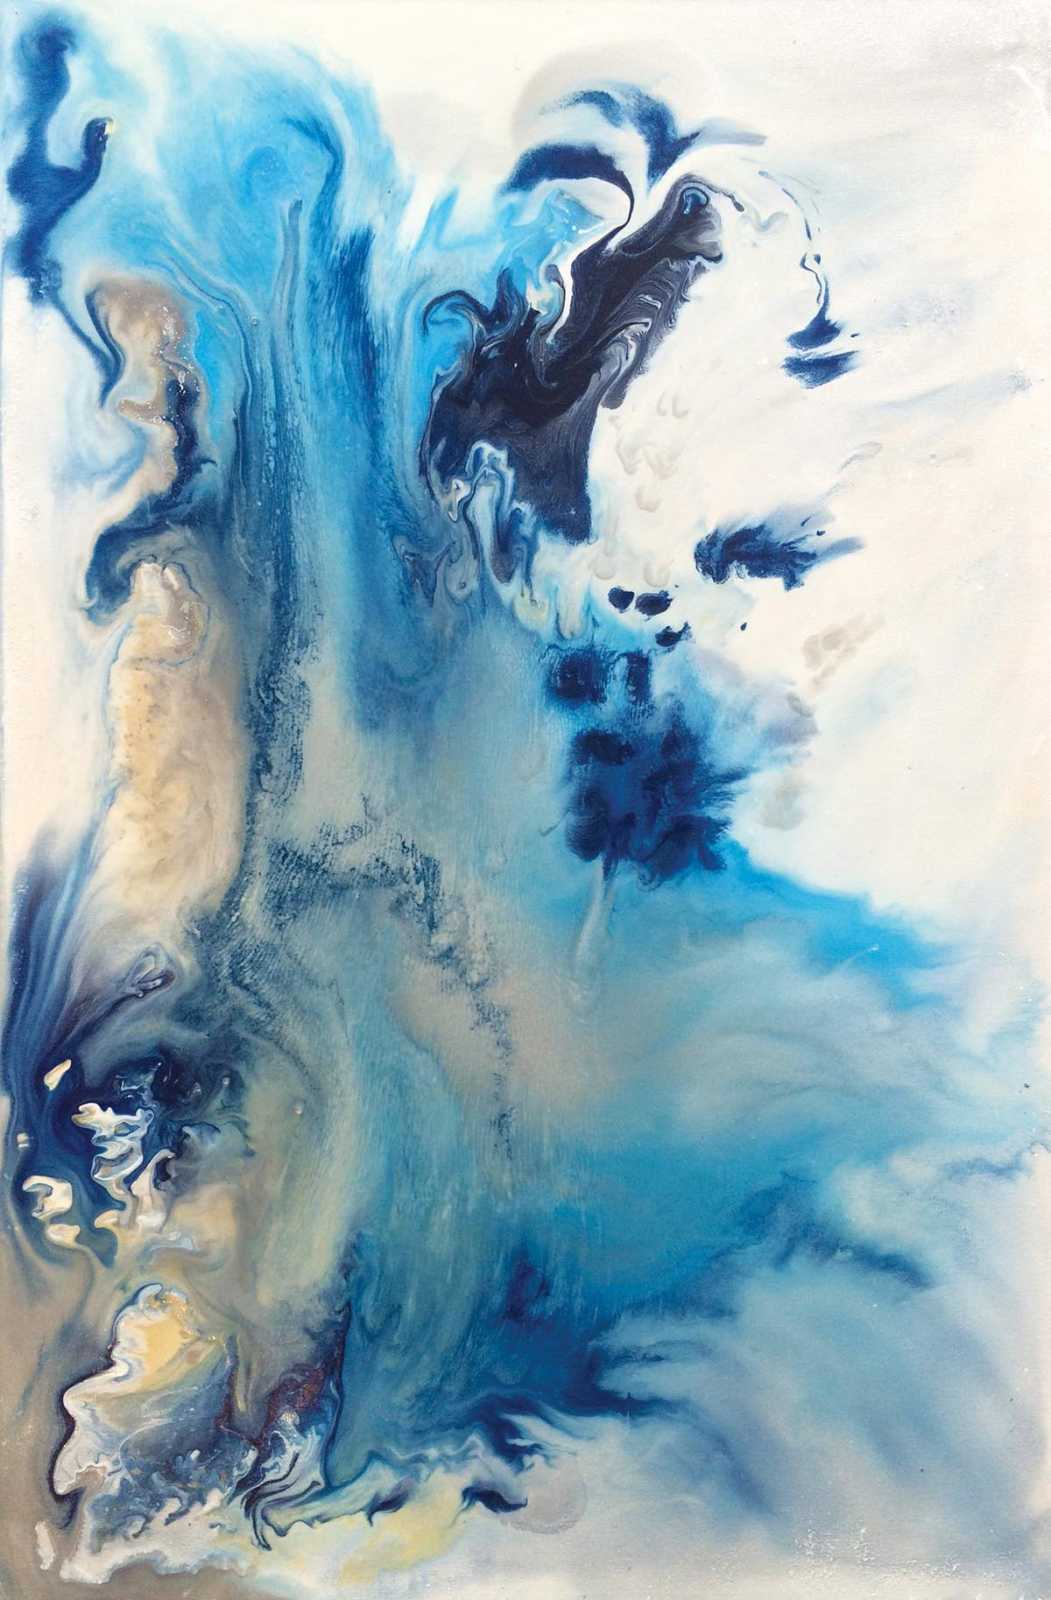 _sea-of-storms-i__24x36in_acryliconcanvas